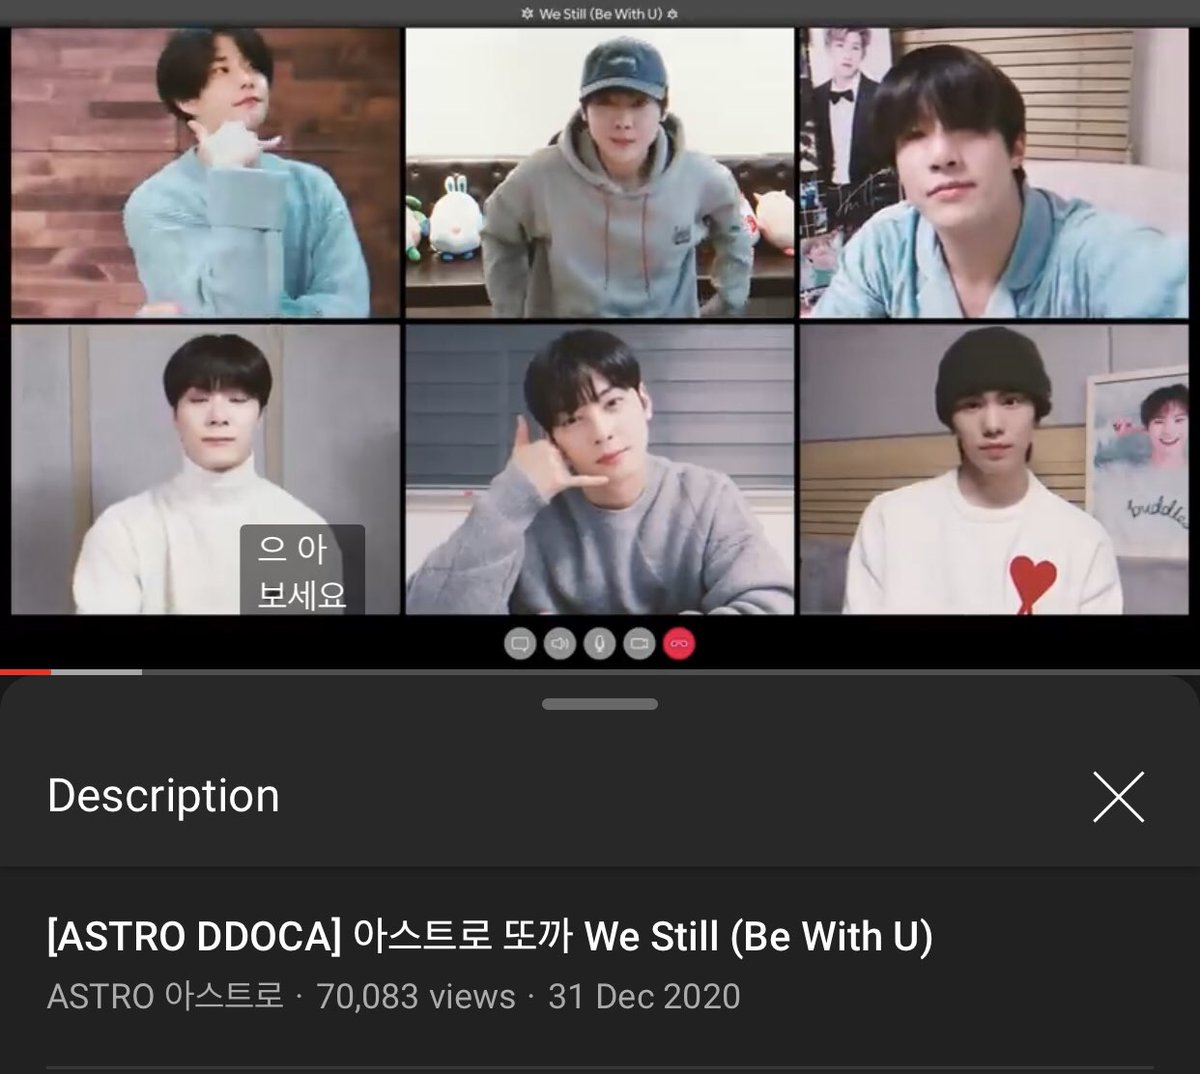 [📈] 210101 12:30 AM KST 'We Still (Be With U)' DDOCA Official Channel: 70,083 views (🔺2,872) 🔗youtu.be/zyk2KpV6avk Naver TV: 88,652 views (🔺1,128) 🔗naver.me/FVPwMoN9 [ #아스트로 #ASTRO_BeWithU @offclASTRO ]